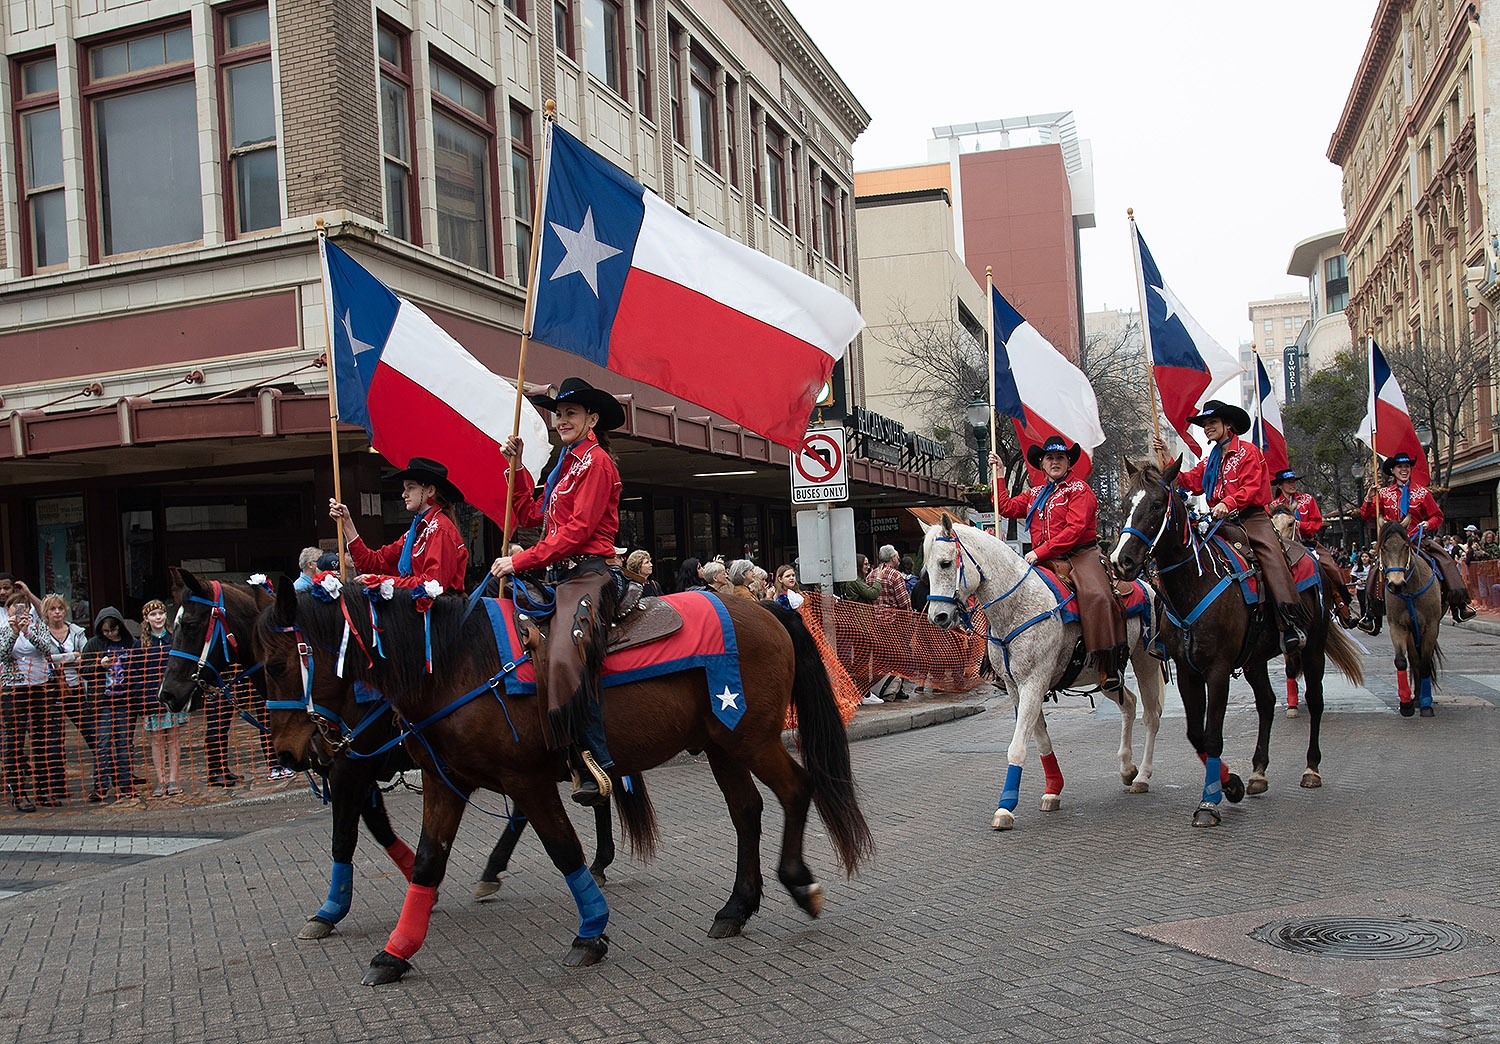 Participants hold their flags during the Western Heritage Parade and Cattle Drive Feb. 2 on Houston Street. <em><b>V. Finster | Heron</b></em>